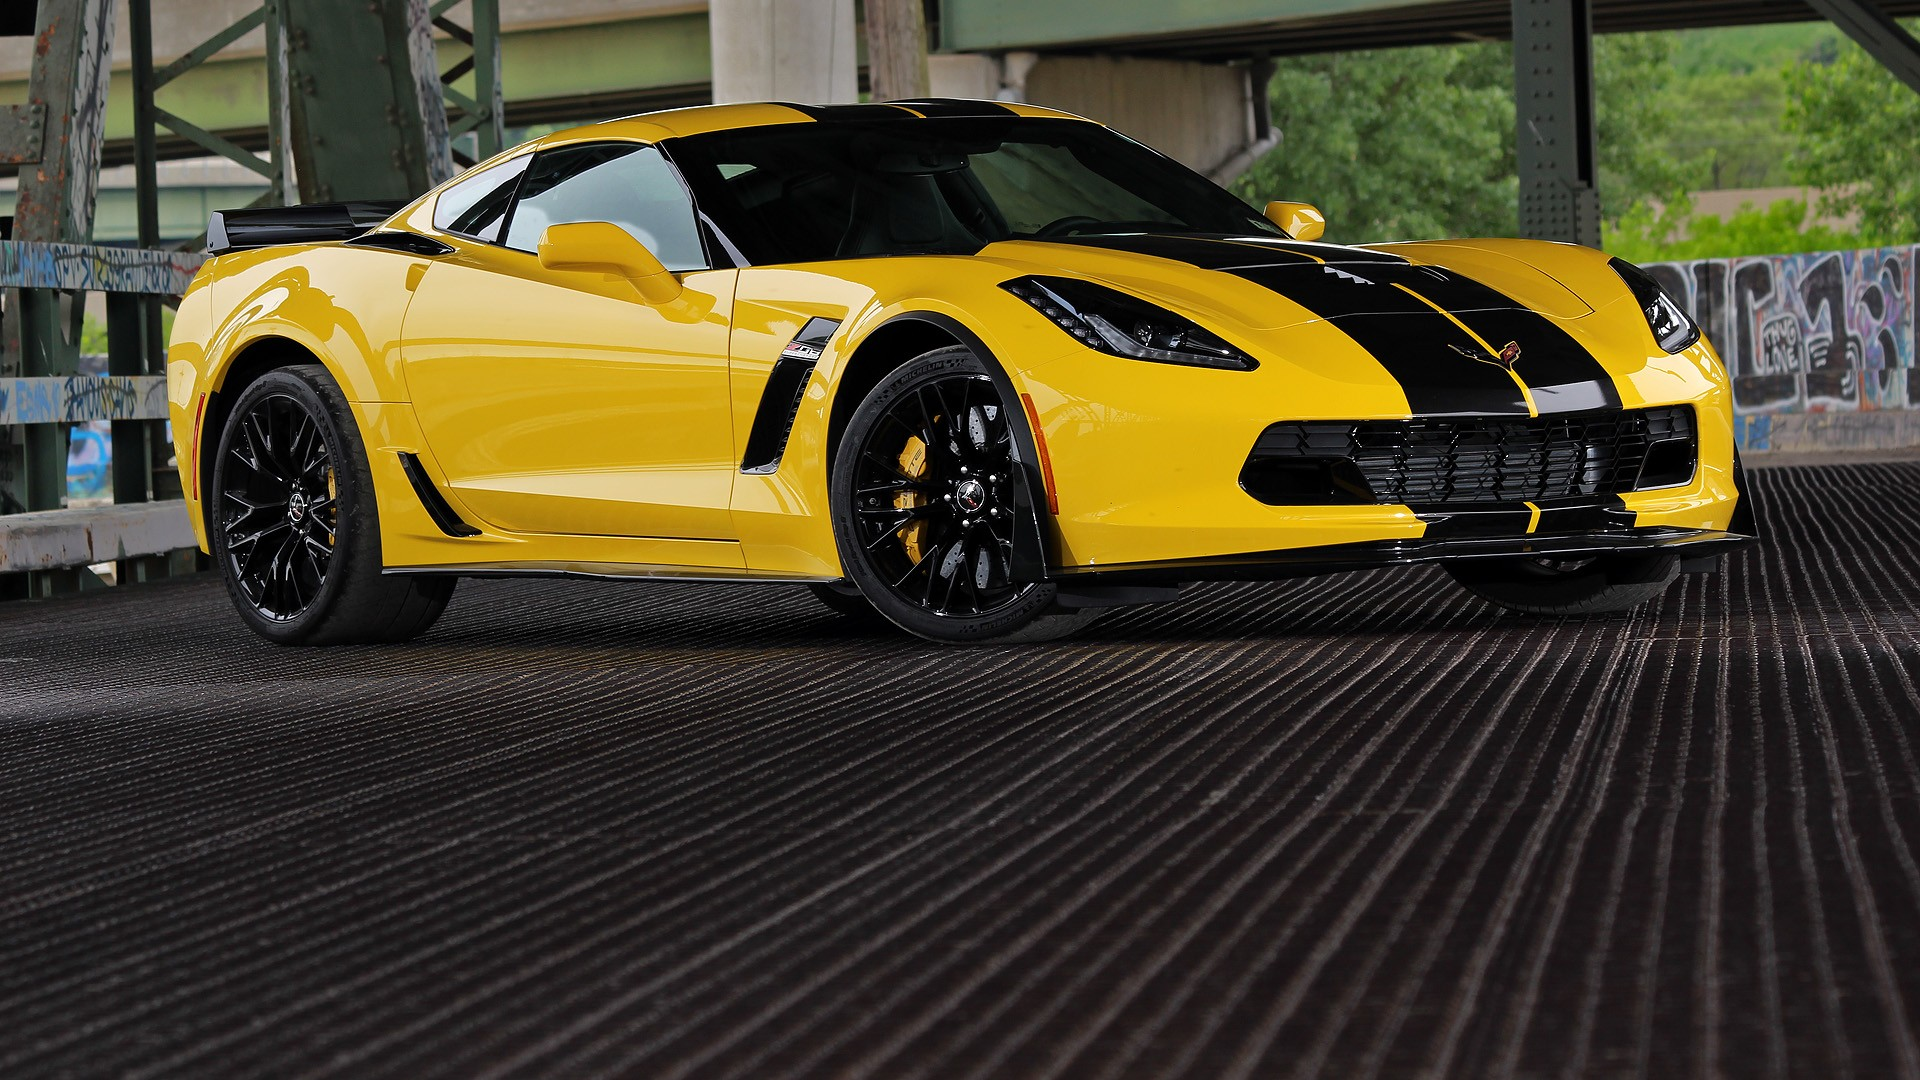 2015 Corvette Z06 Gets a Procharger, Jumps to Over 1,000 HP - autoevolution